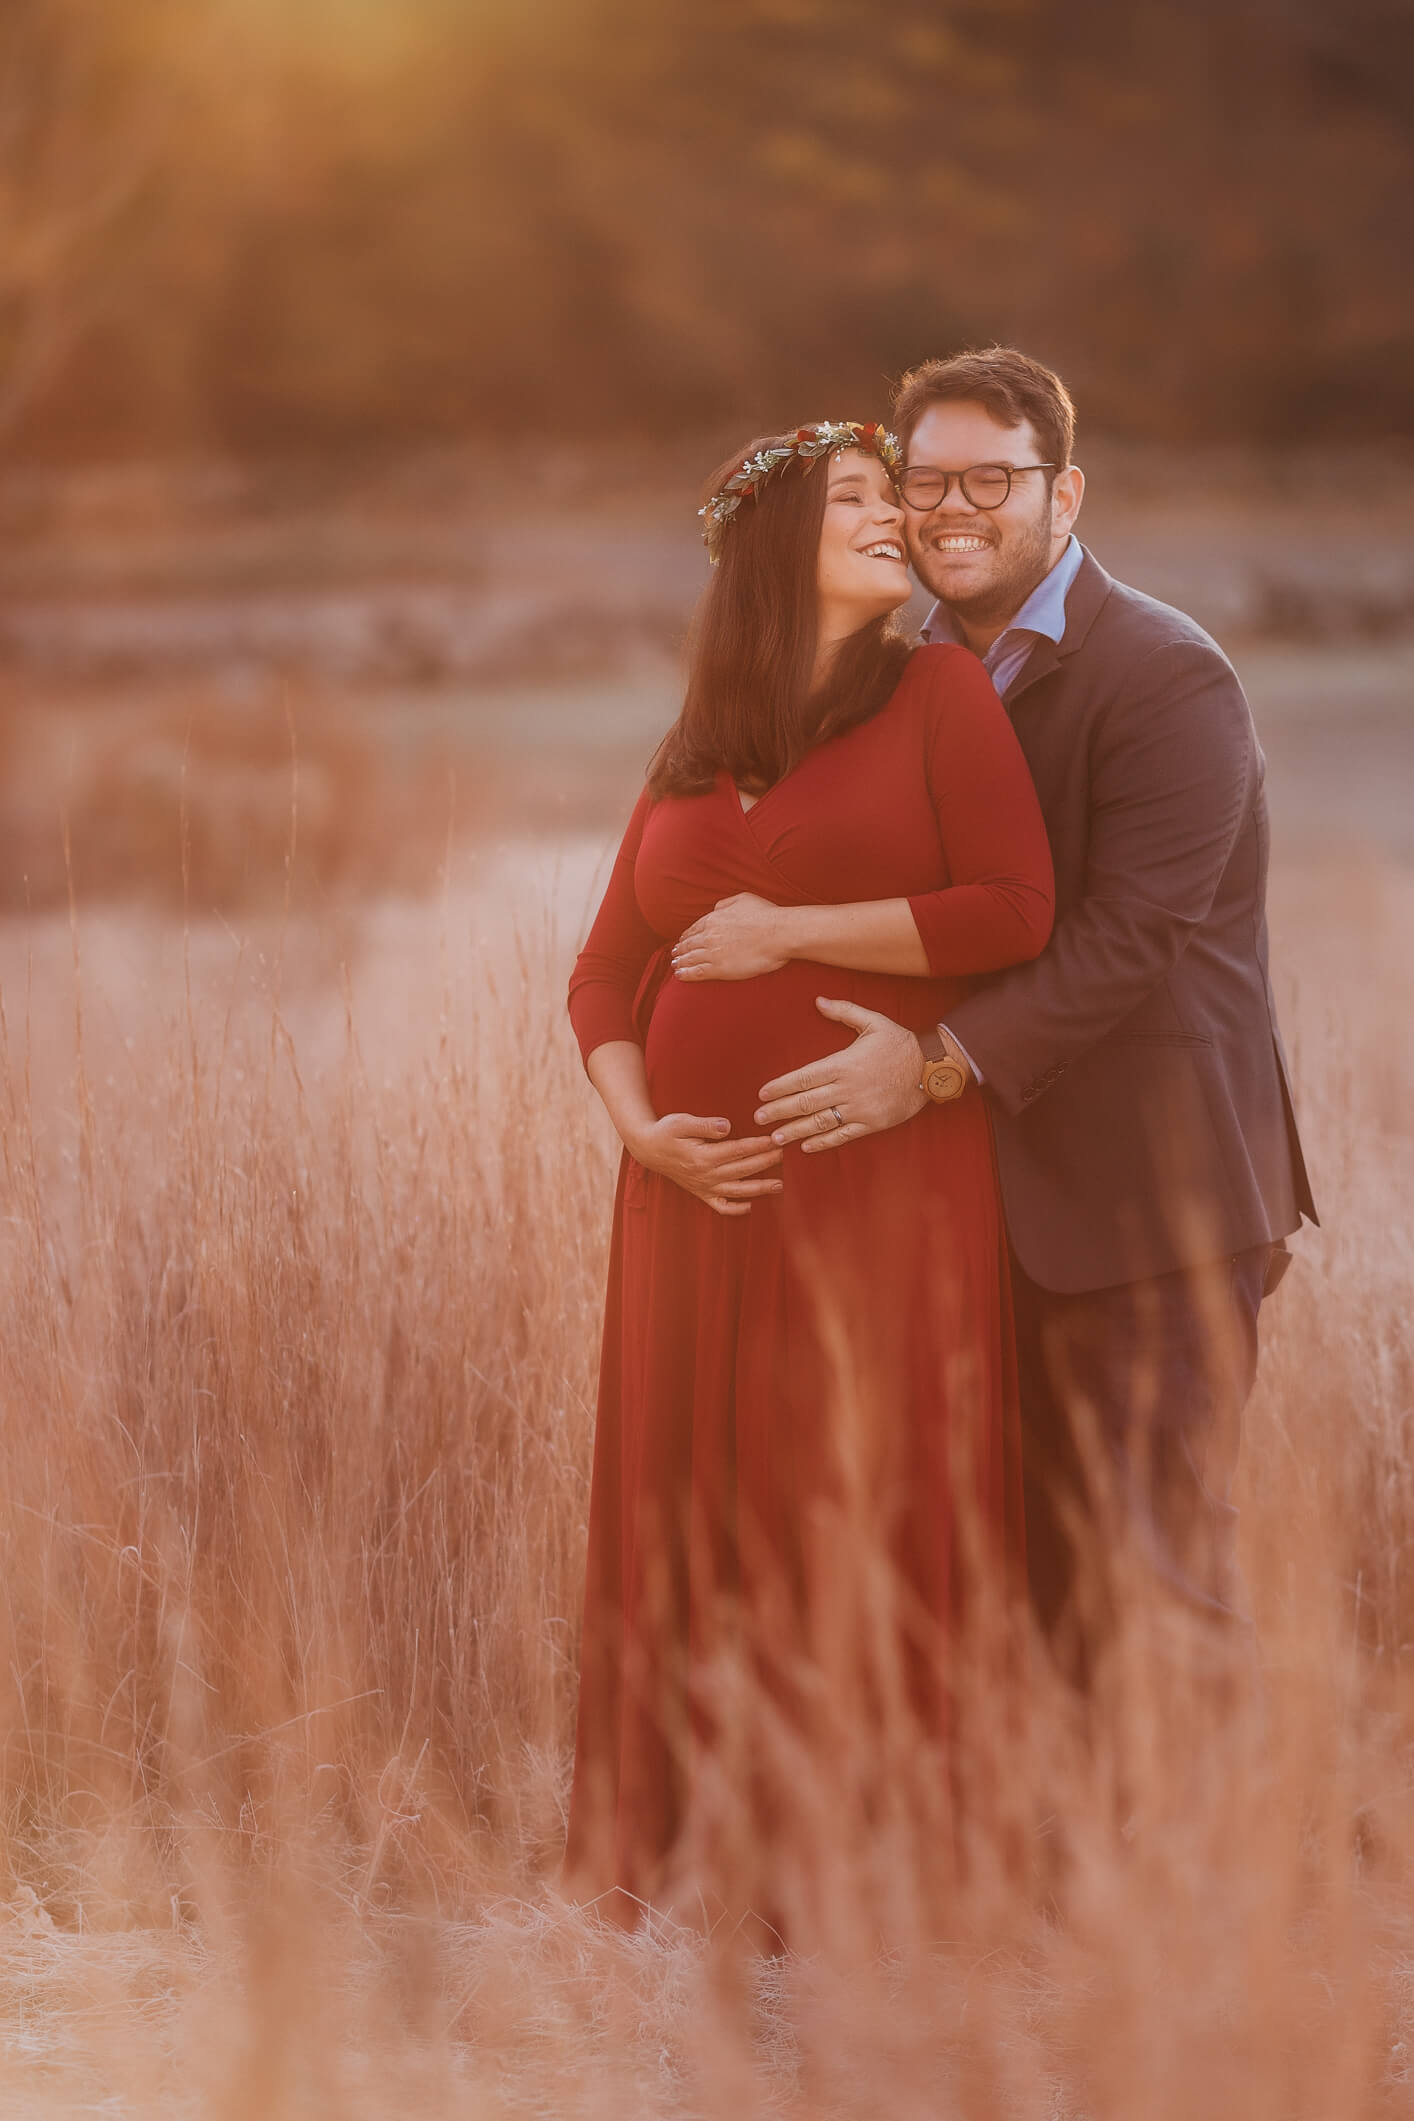 Pregnancy Maternity Photography - Fine Art Portraits, Boston-33